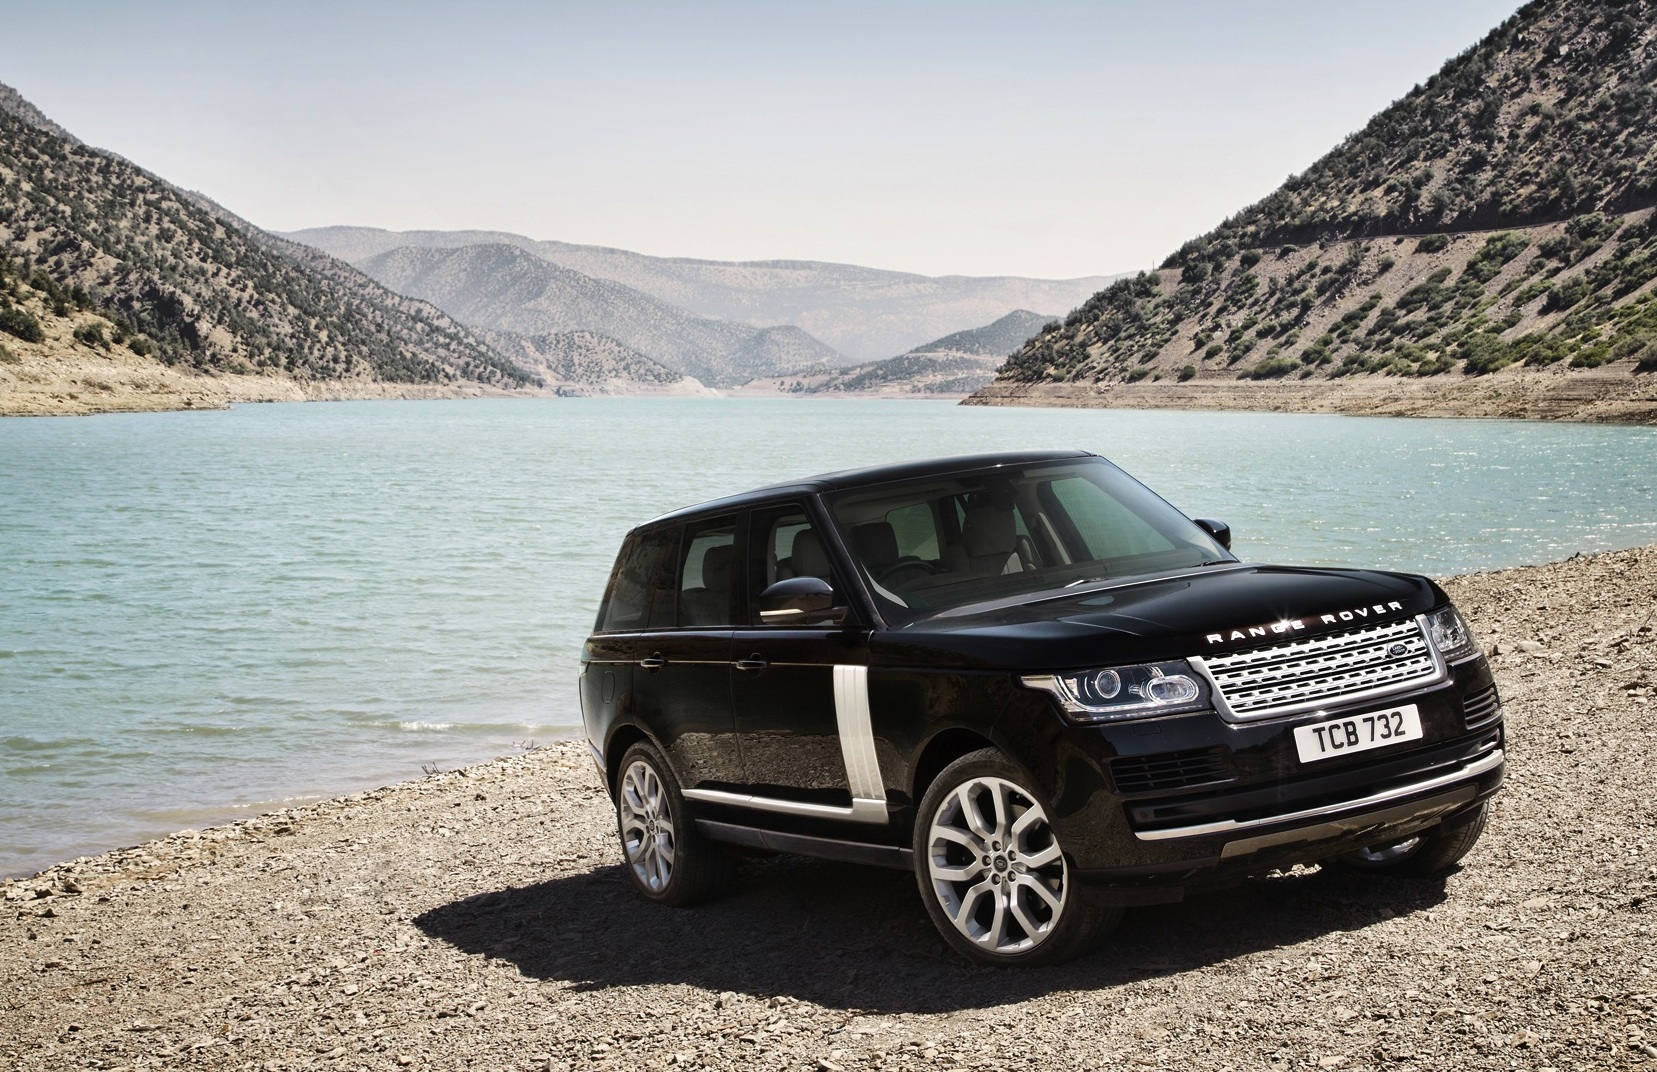 range rover hybrid to achieve 6 3l 100km photos 1 of 5. Black Bedroom Furniture Sets. Home Design Ideas